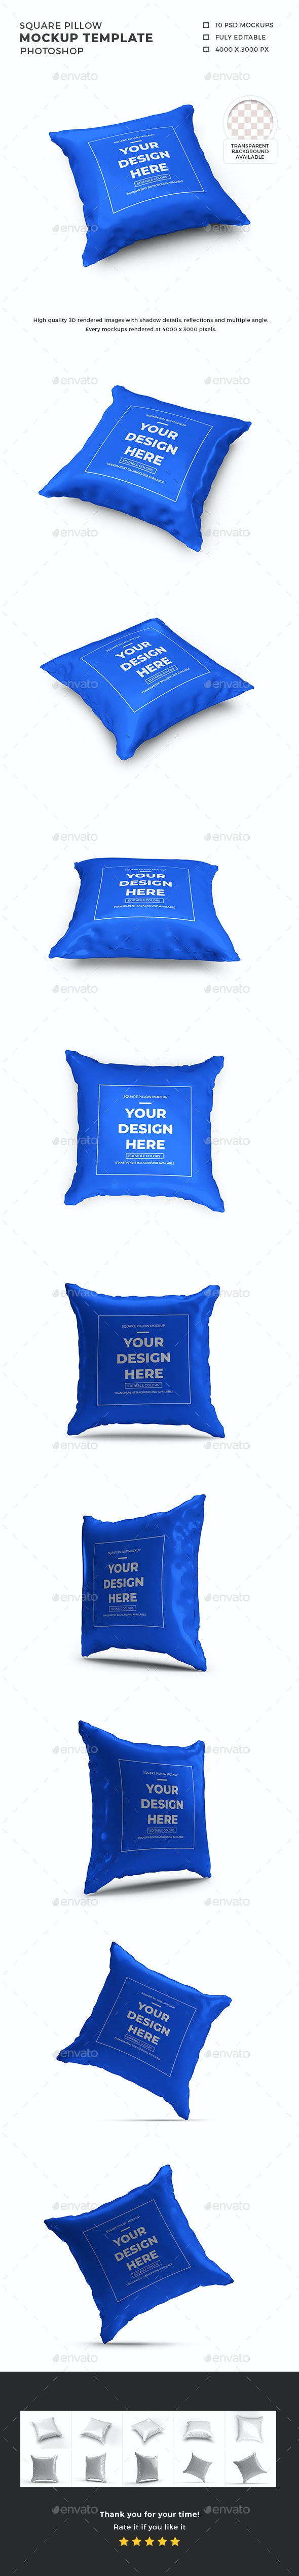 Square Pillow Mockup Template Set - Miscellaneous Product Mock-Ups